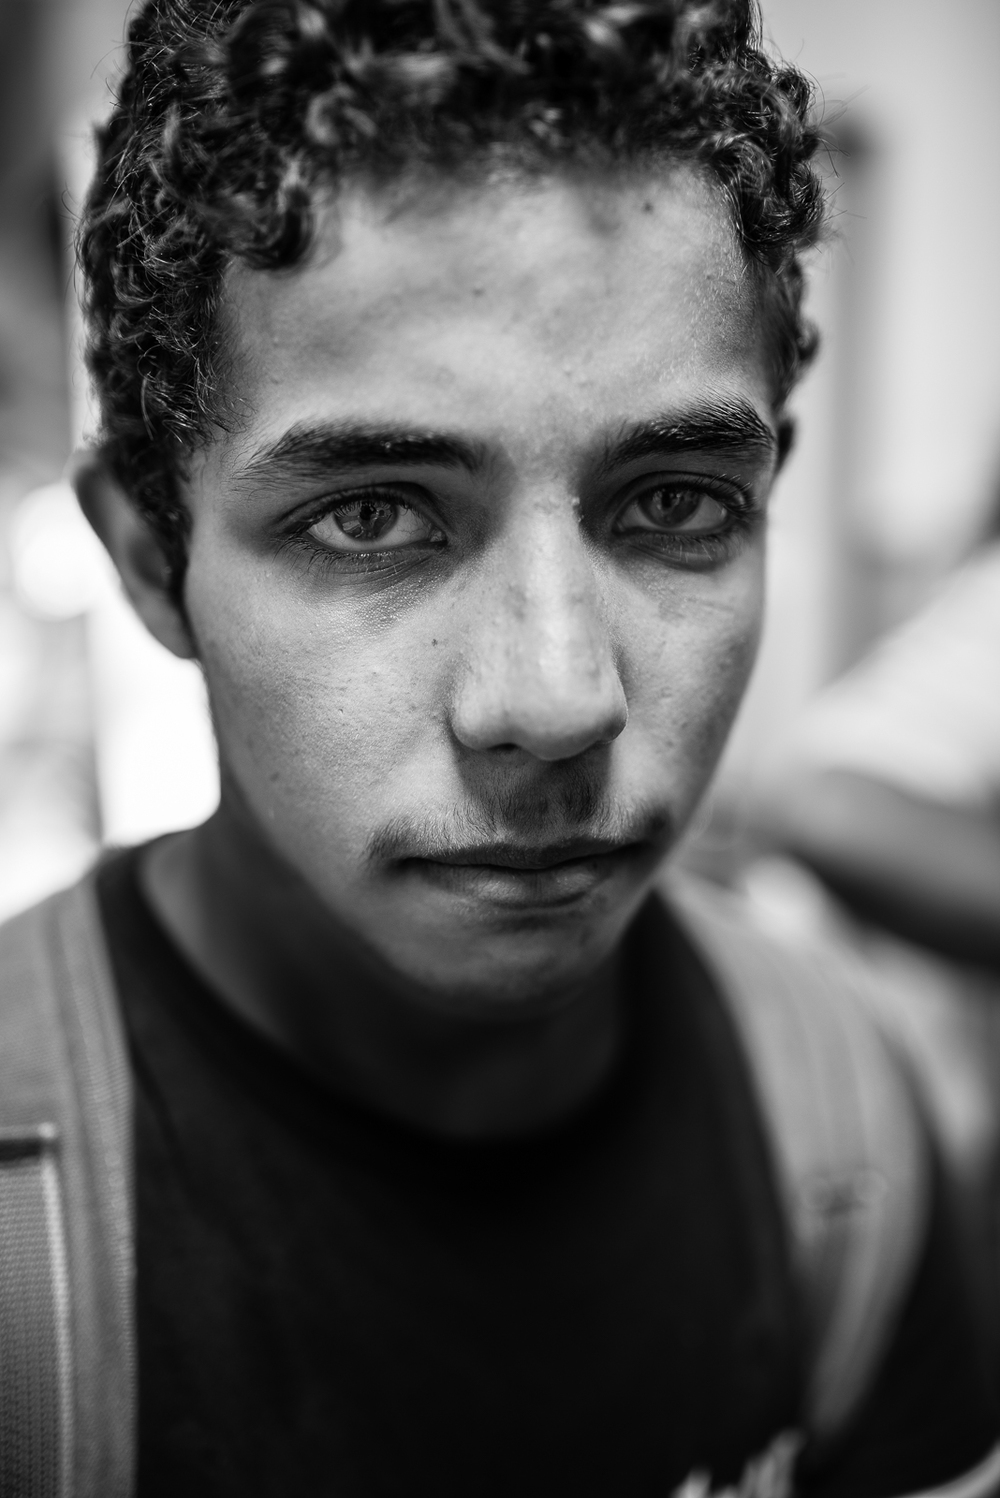 Pozzallo reception center. He is a syrian 15 years boy who has lost his family and now his alone in italy.  VIDEO/4